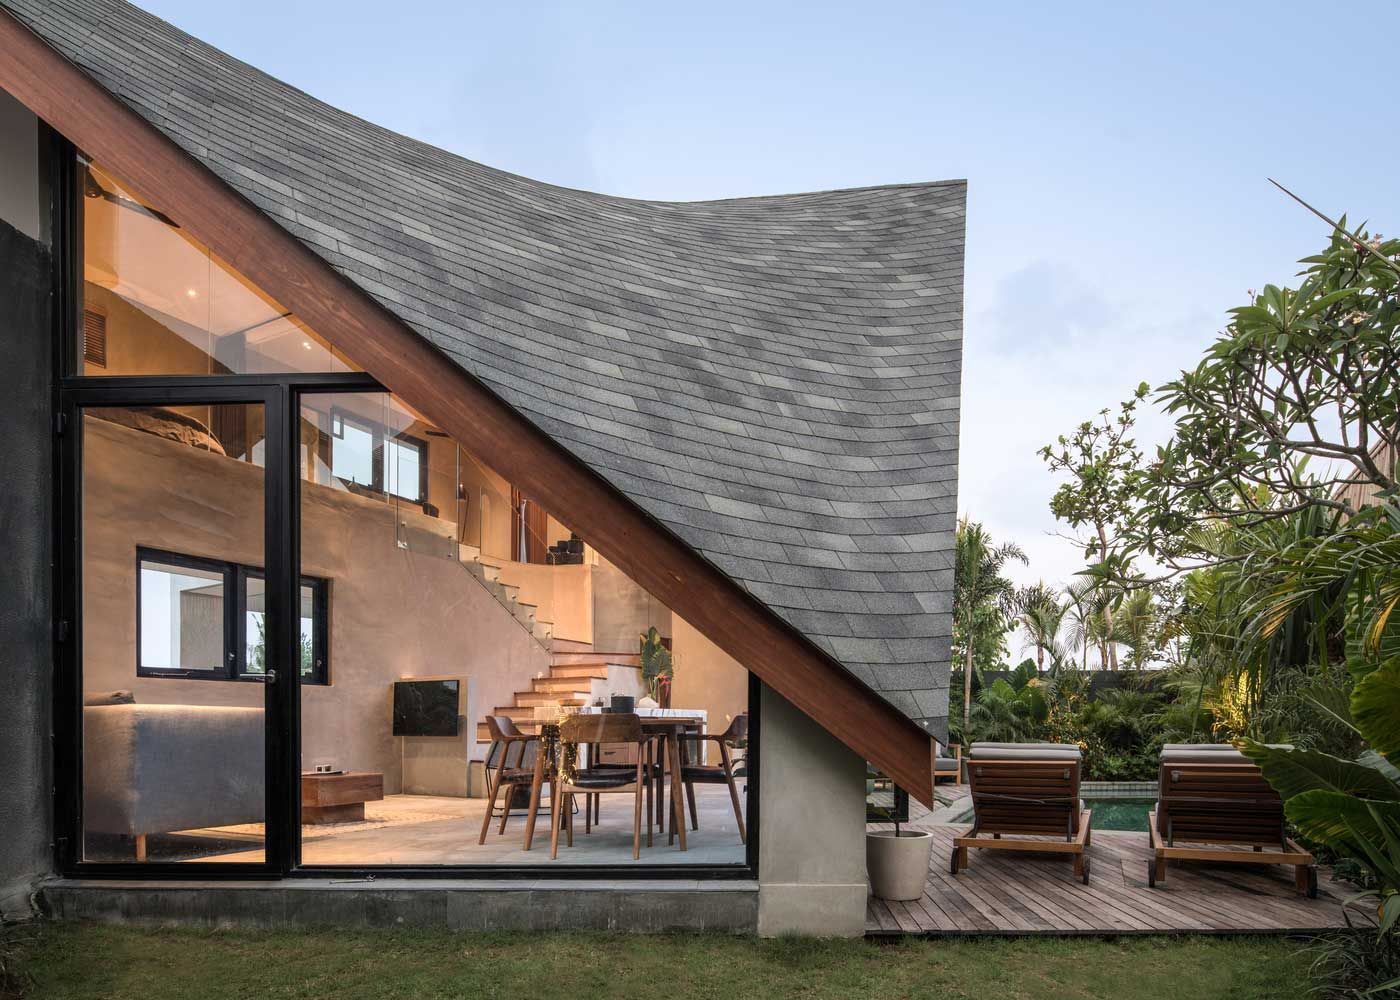 Architectural Bureau Alexis Dornier Presented An Original And Stylish Country House In The Style Of A Chalet Impr In 2020 Architecture Roof Design Architecture Design